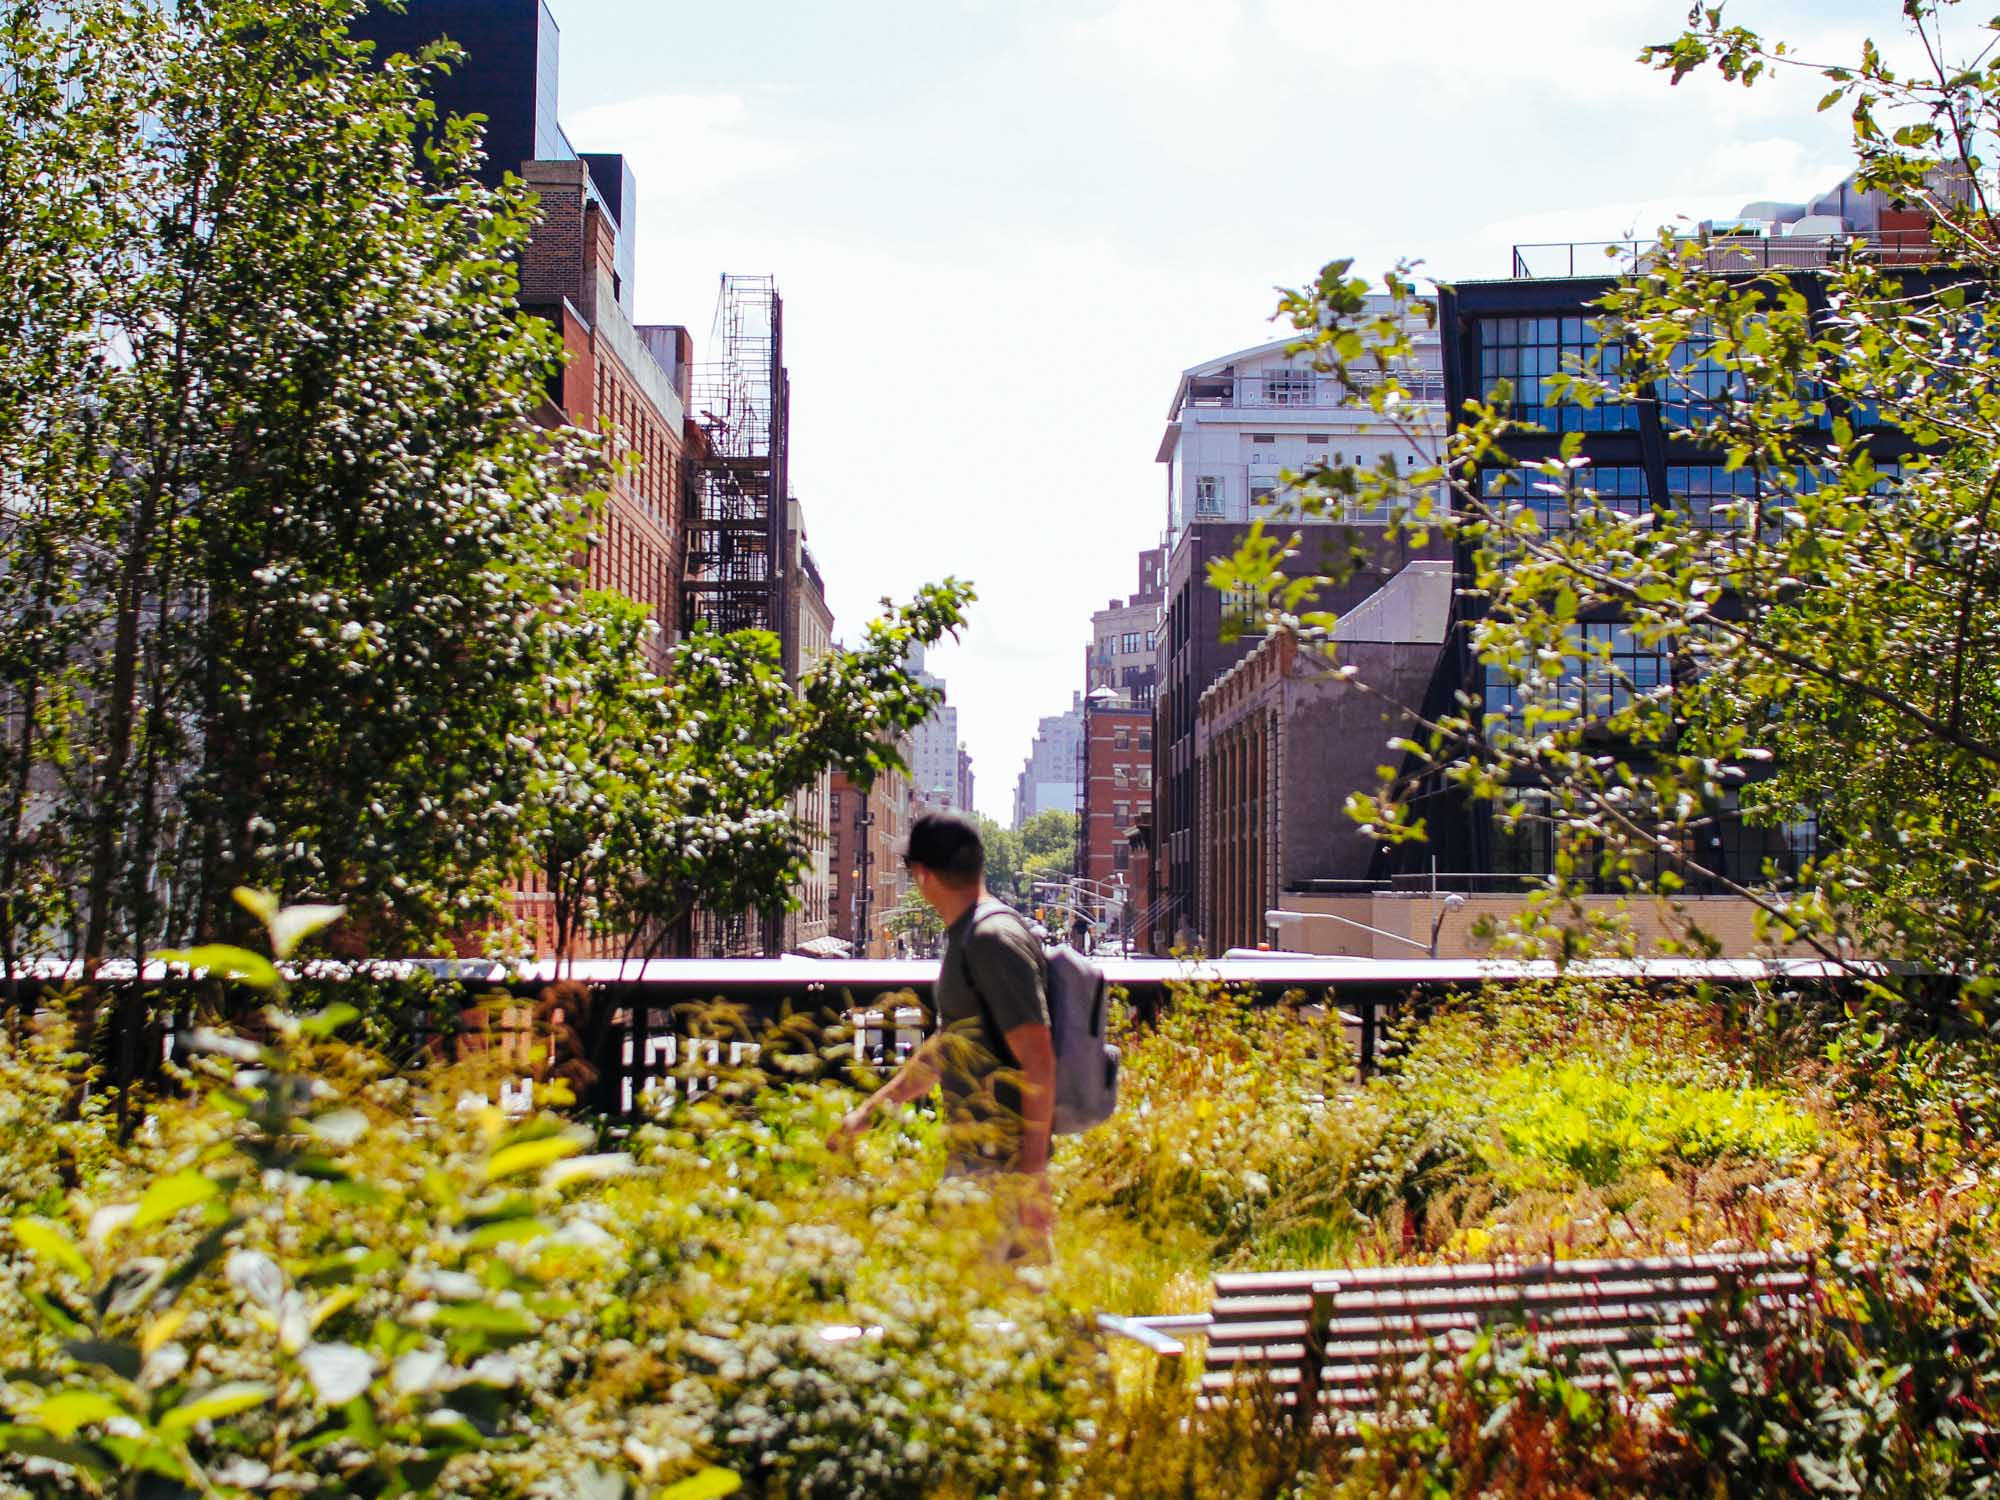 On the High Line looking down a Manhattan street